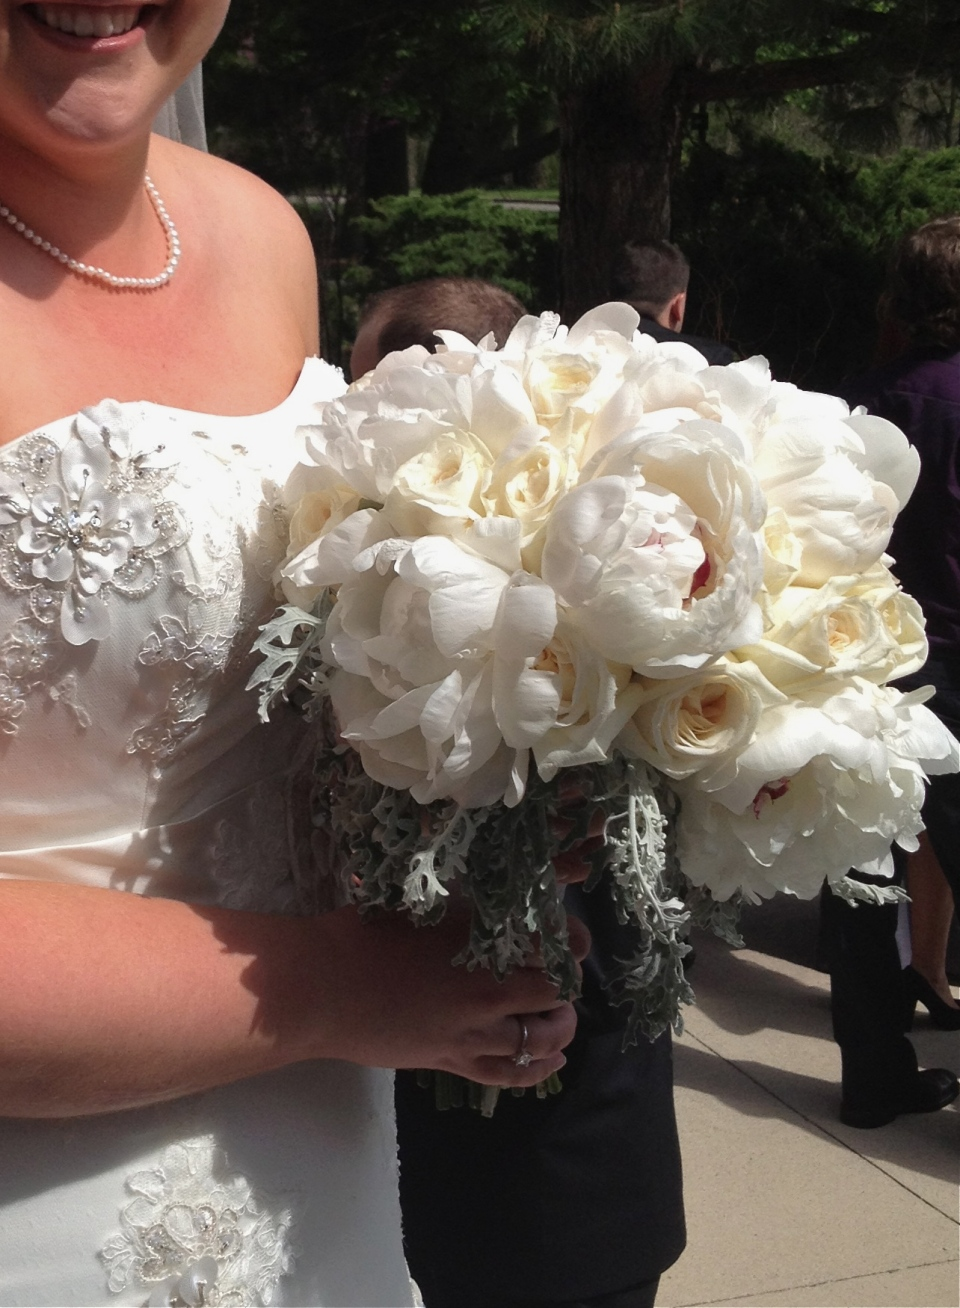 Oversized white bouquet of peonies, garden roses and dusty miller